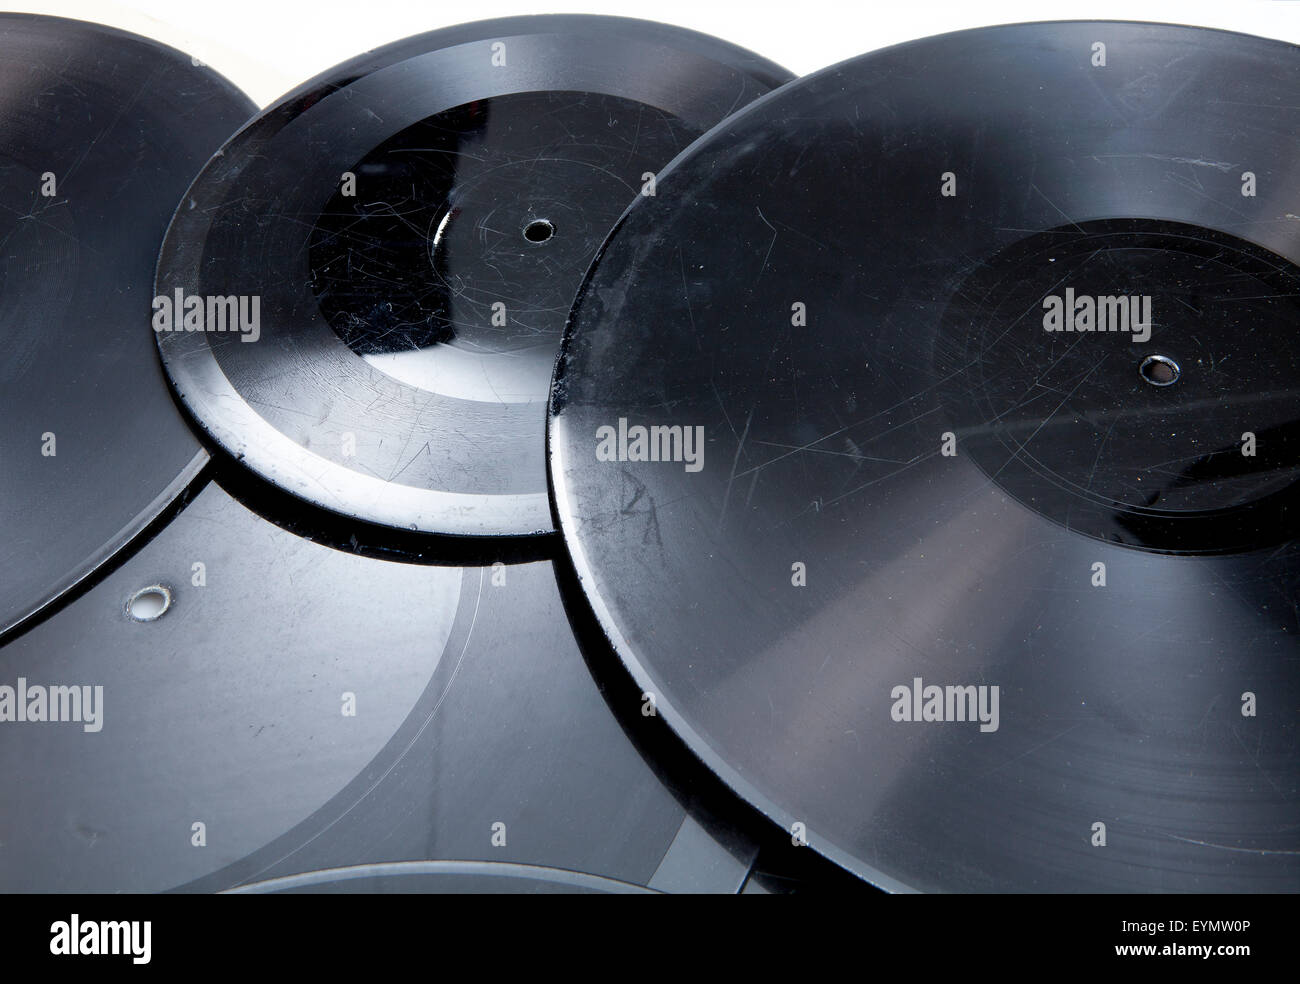 Old shellac records, early sample pressure - Stock Image